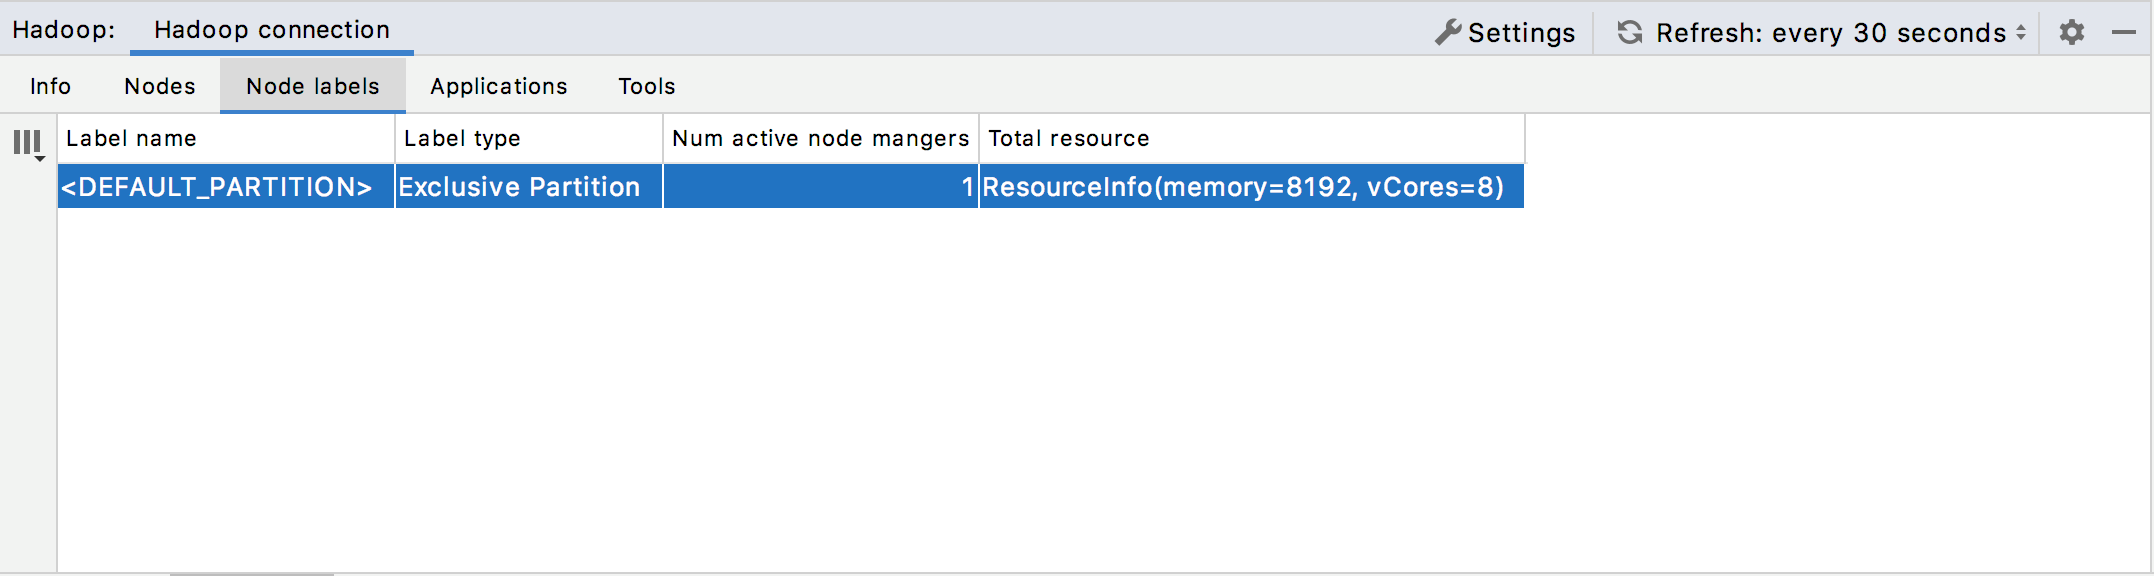 Hadoop monitoring: Node labels